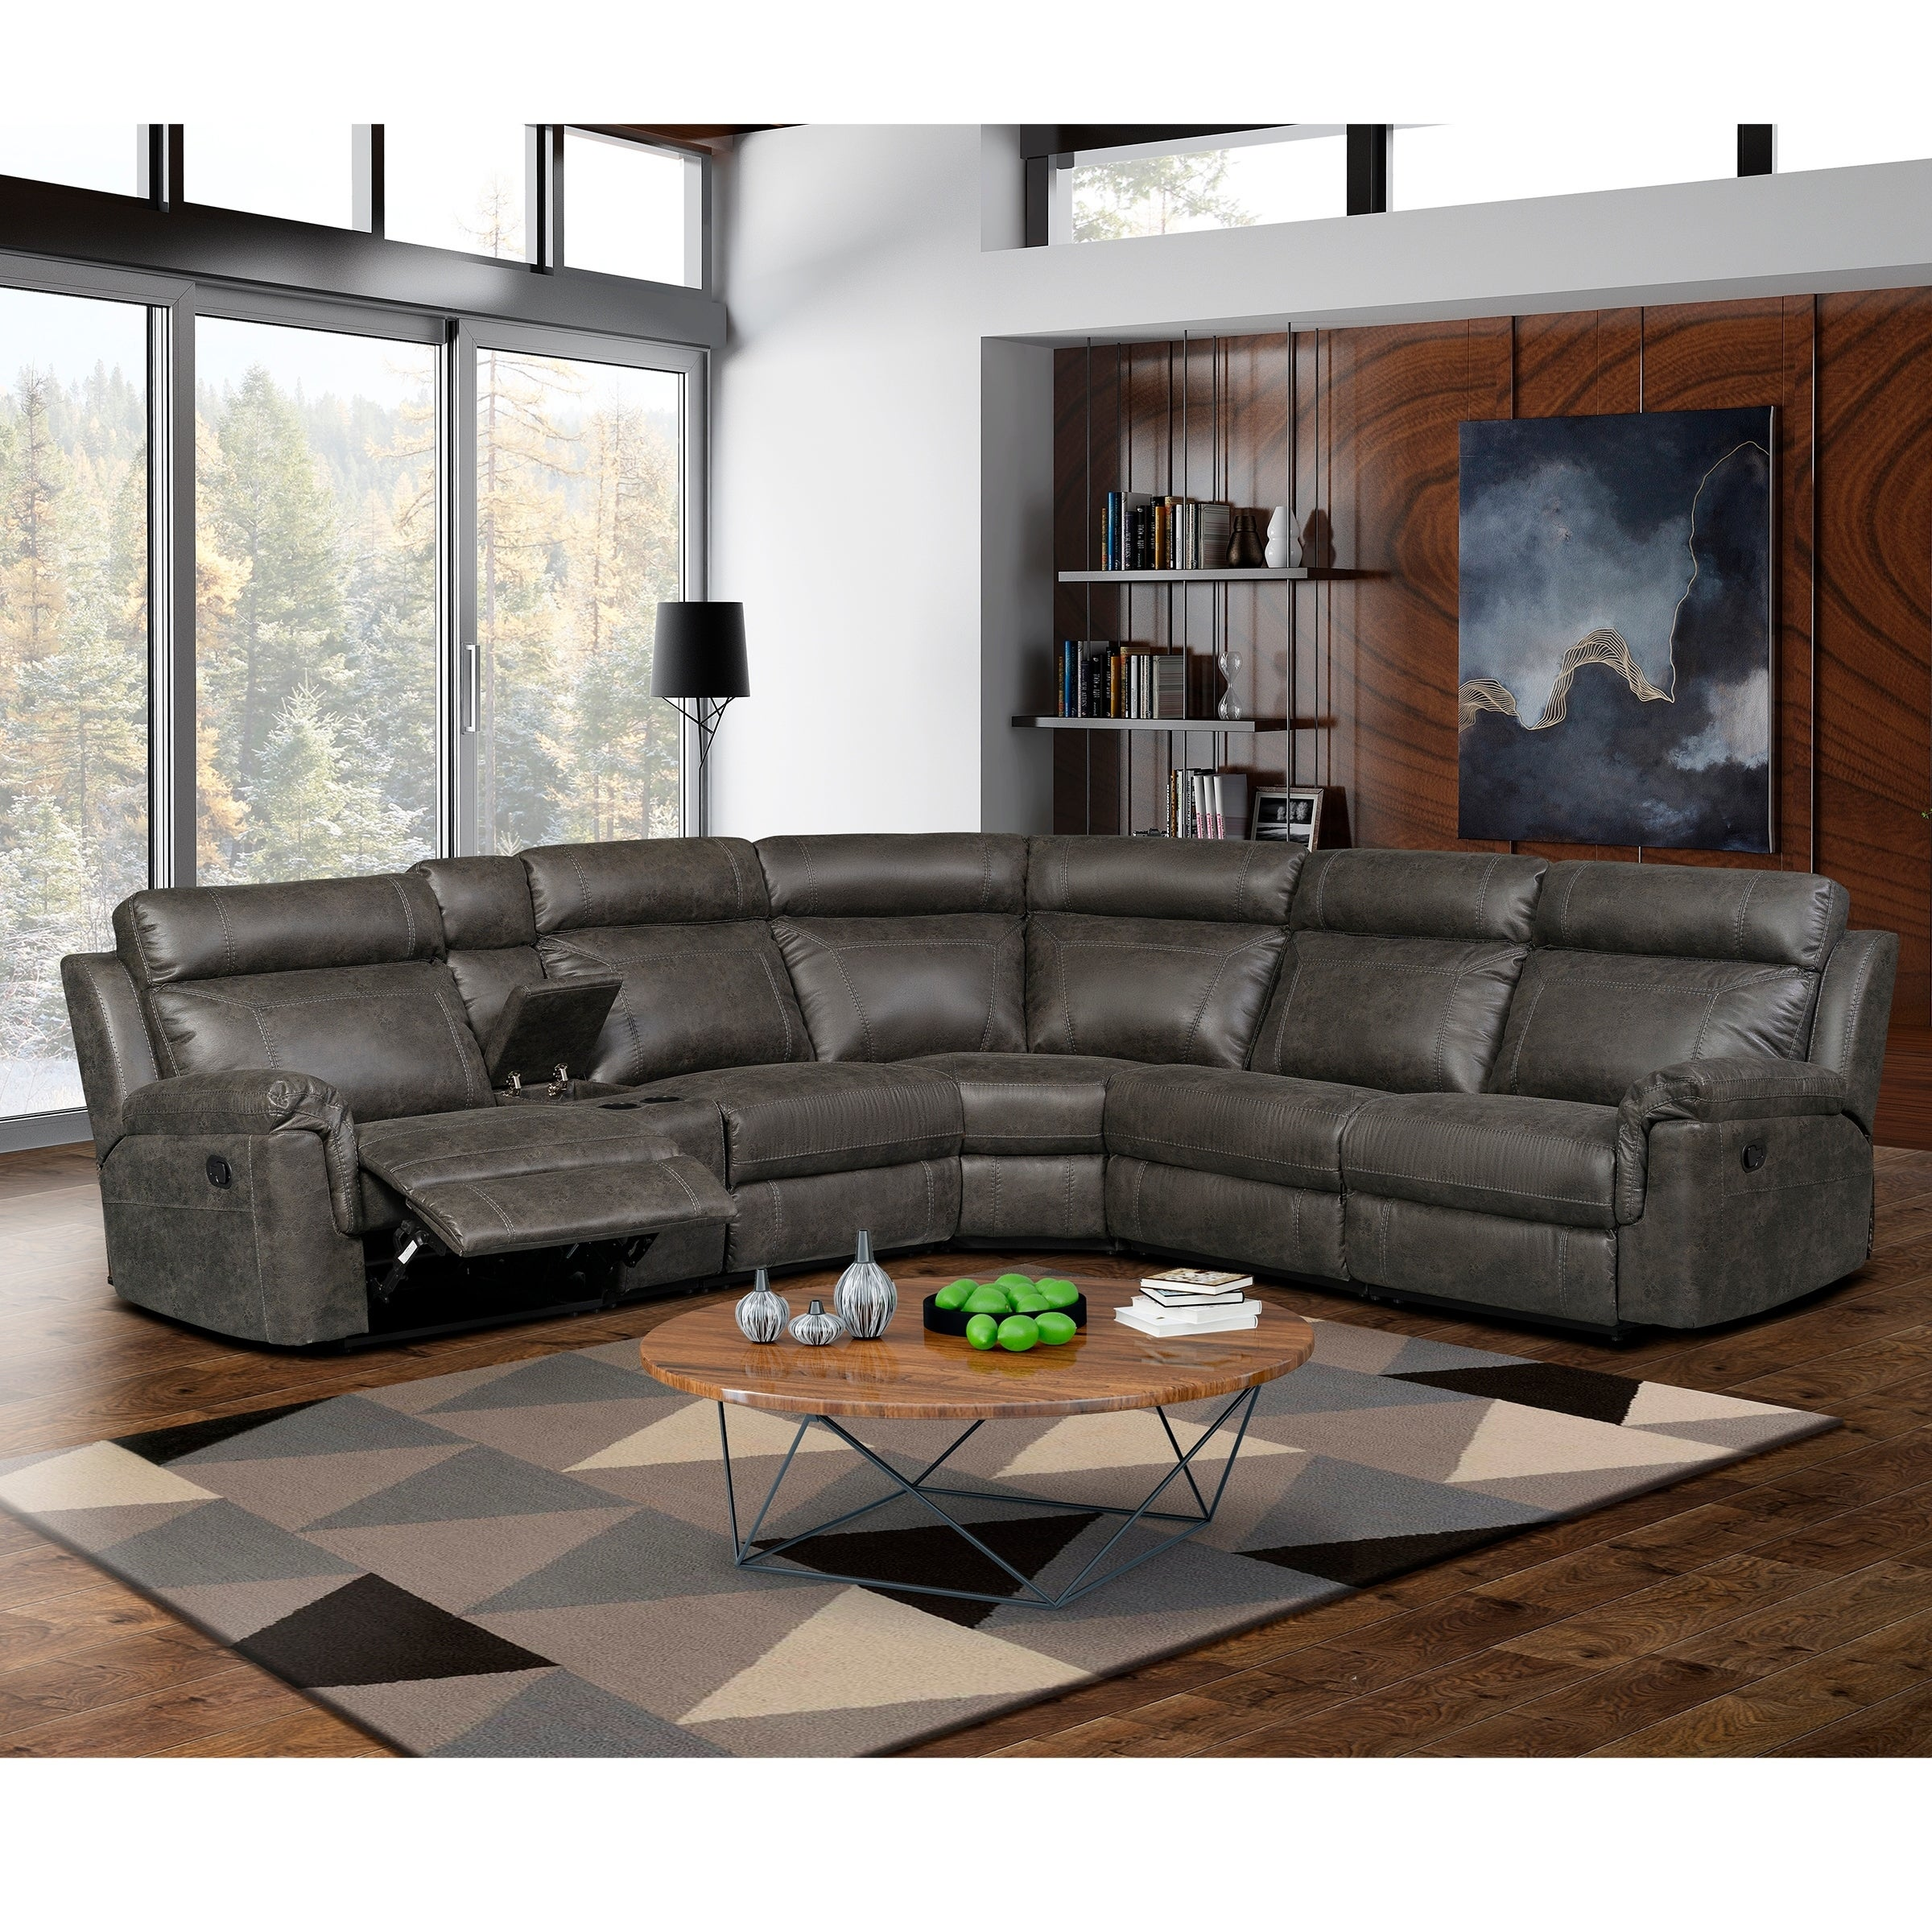 Home Decor. Wonderful Leather Sectional Sofa Inspiration As ...